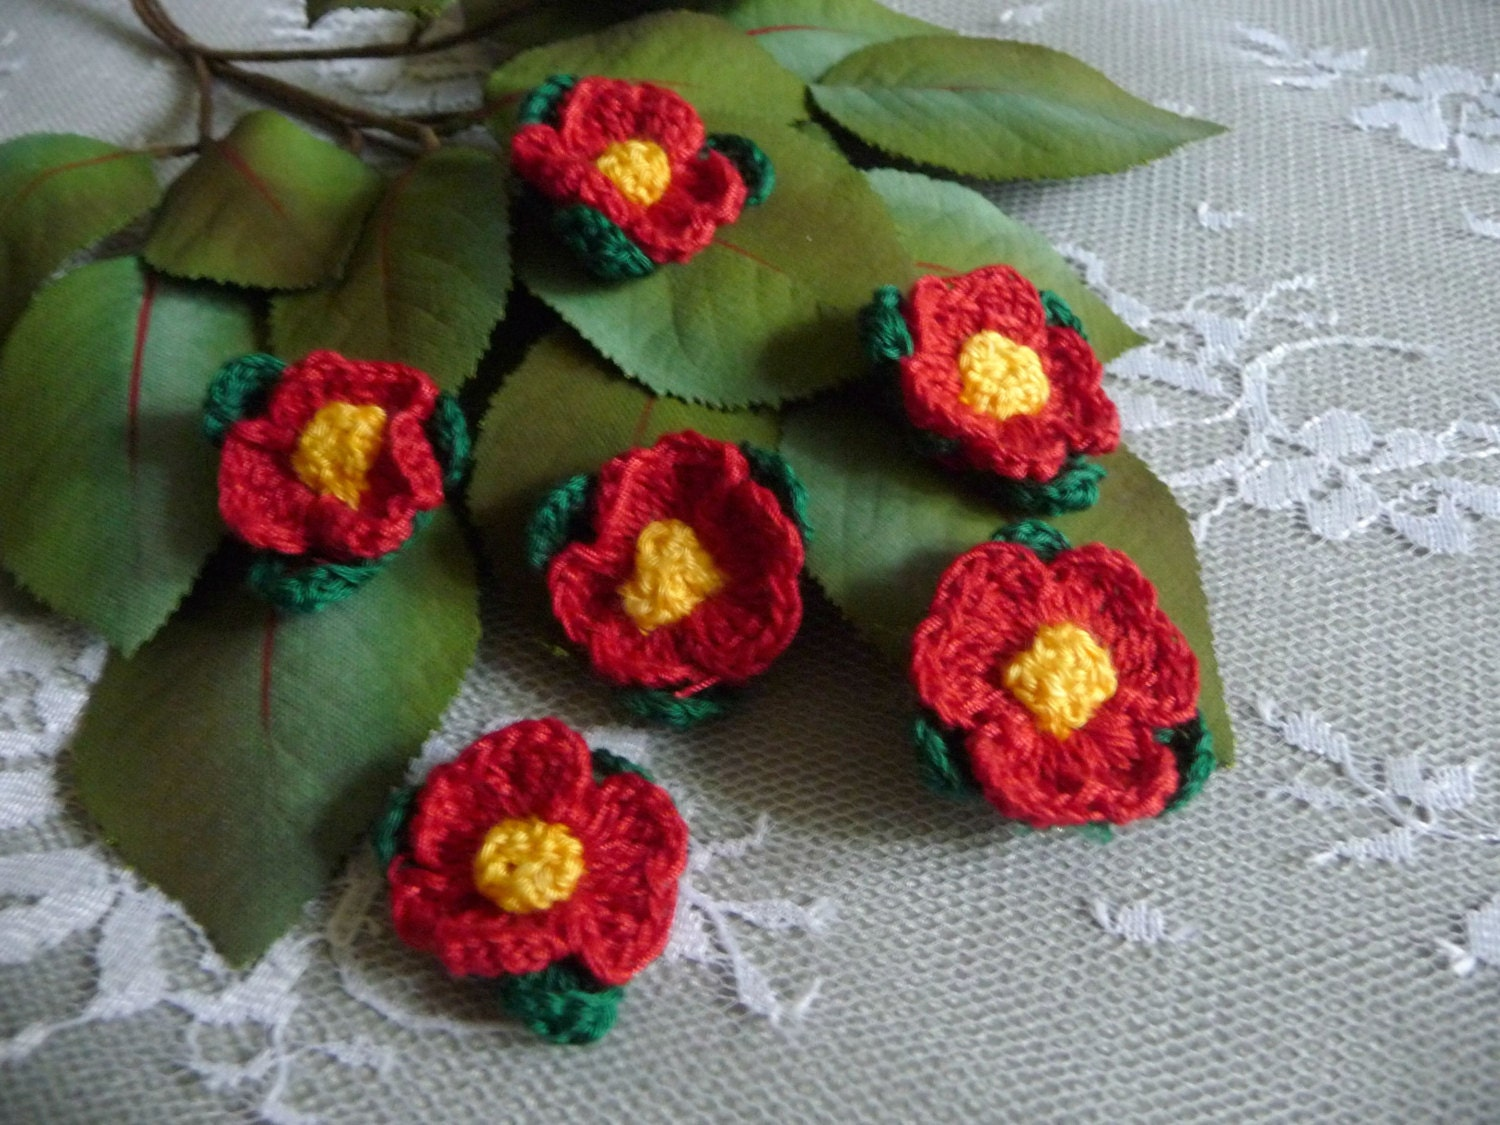 Sale Small Crocheted Red Flowers With Leaves Applique Handmade Etsy